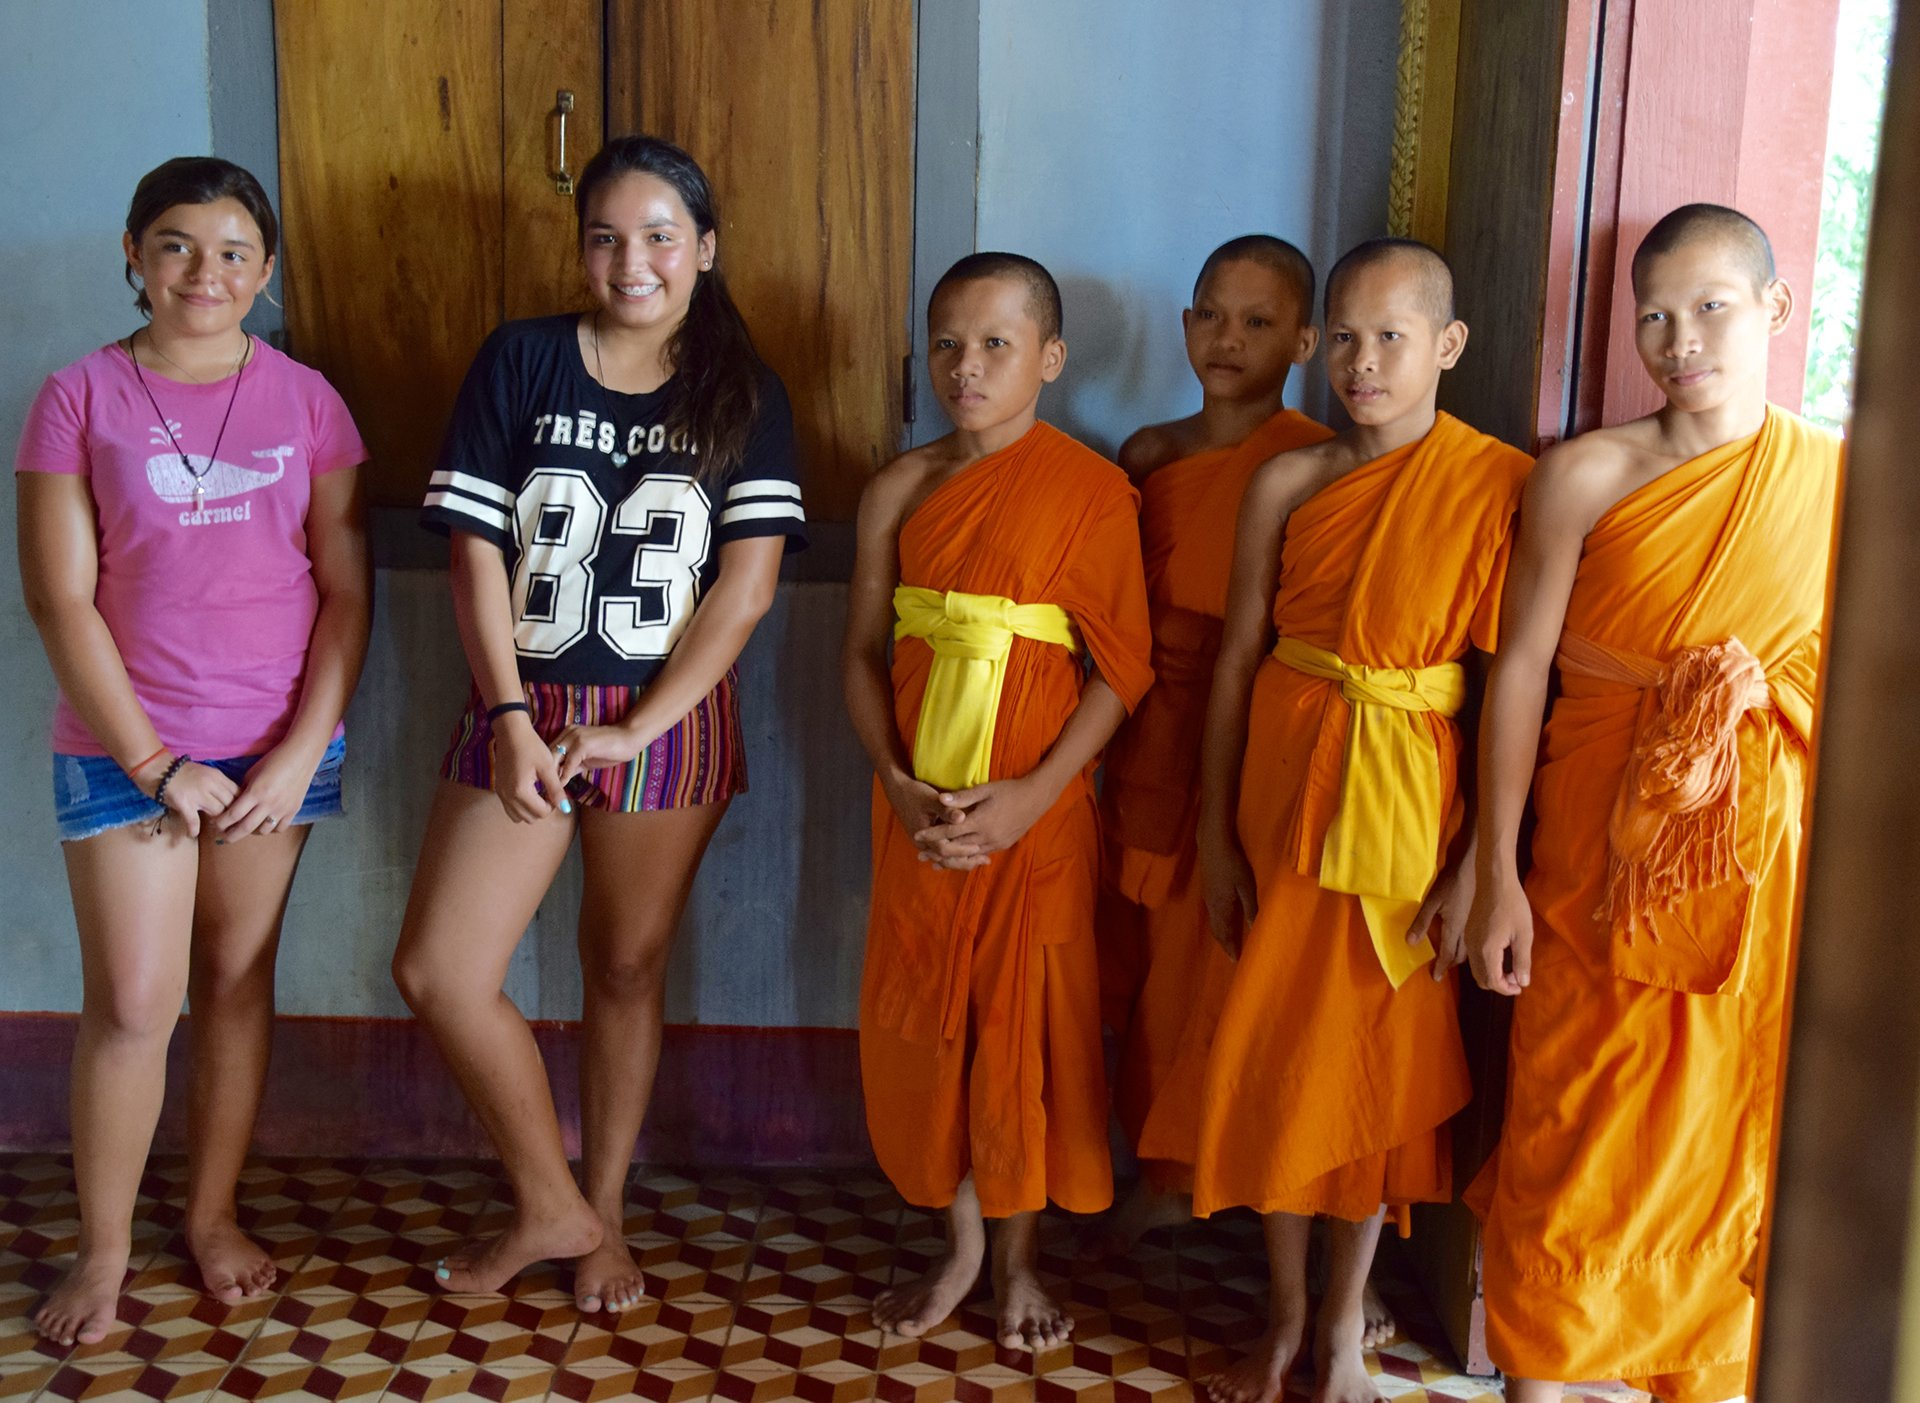 Ava, Sophia and their new buddies at the Monastery